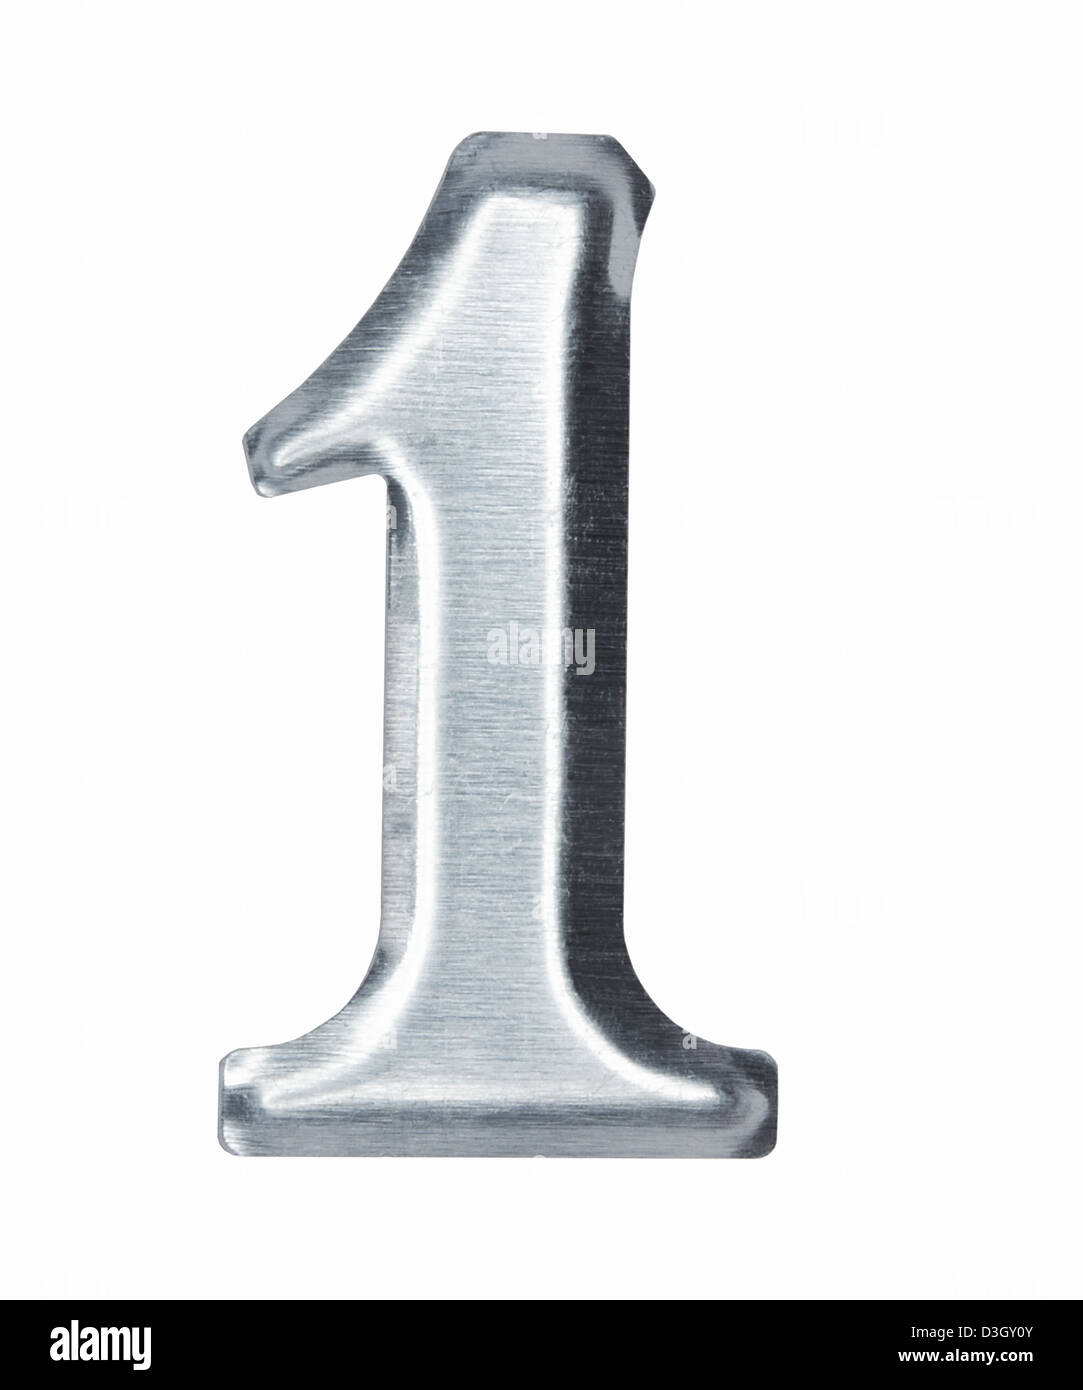 Brushed metal Number 1 one - Stock Image